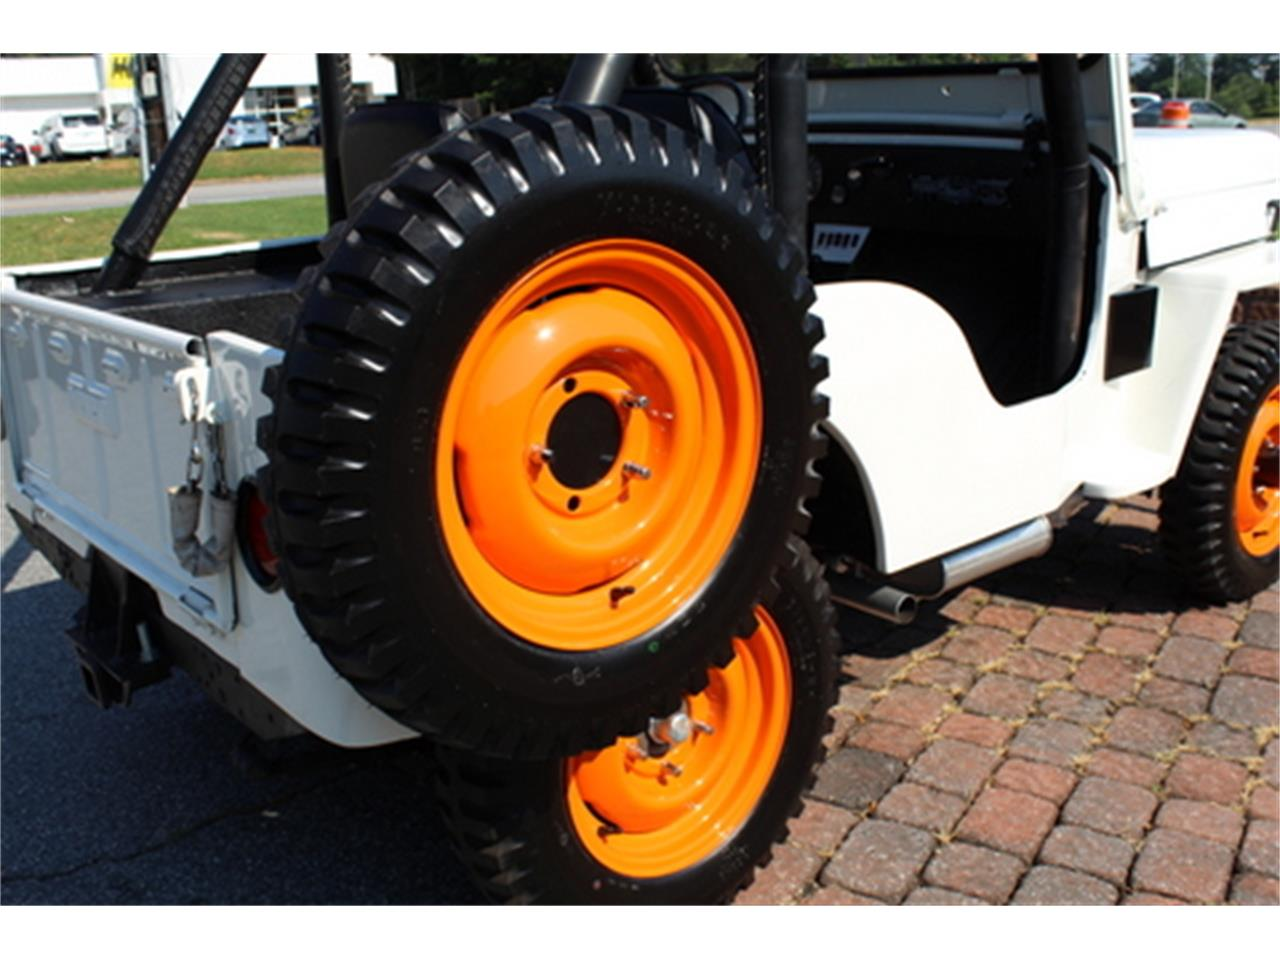 1962 Willys Jeep For Sale Cc 999682 Jeeps On Filter Box Large Picture Of 62 Lfcy